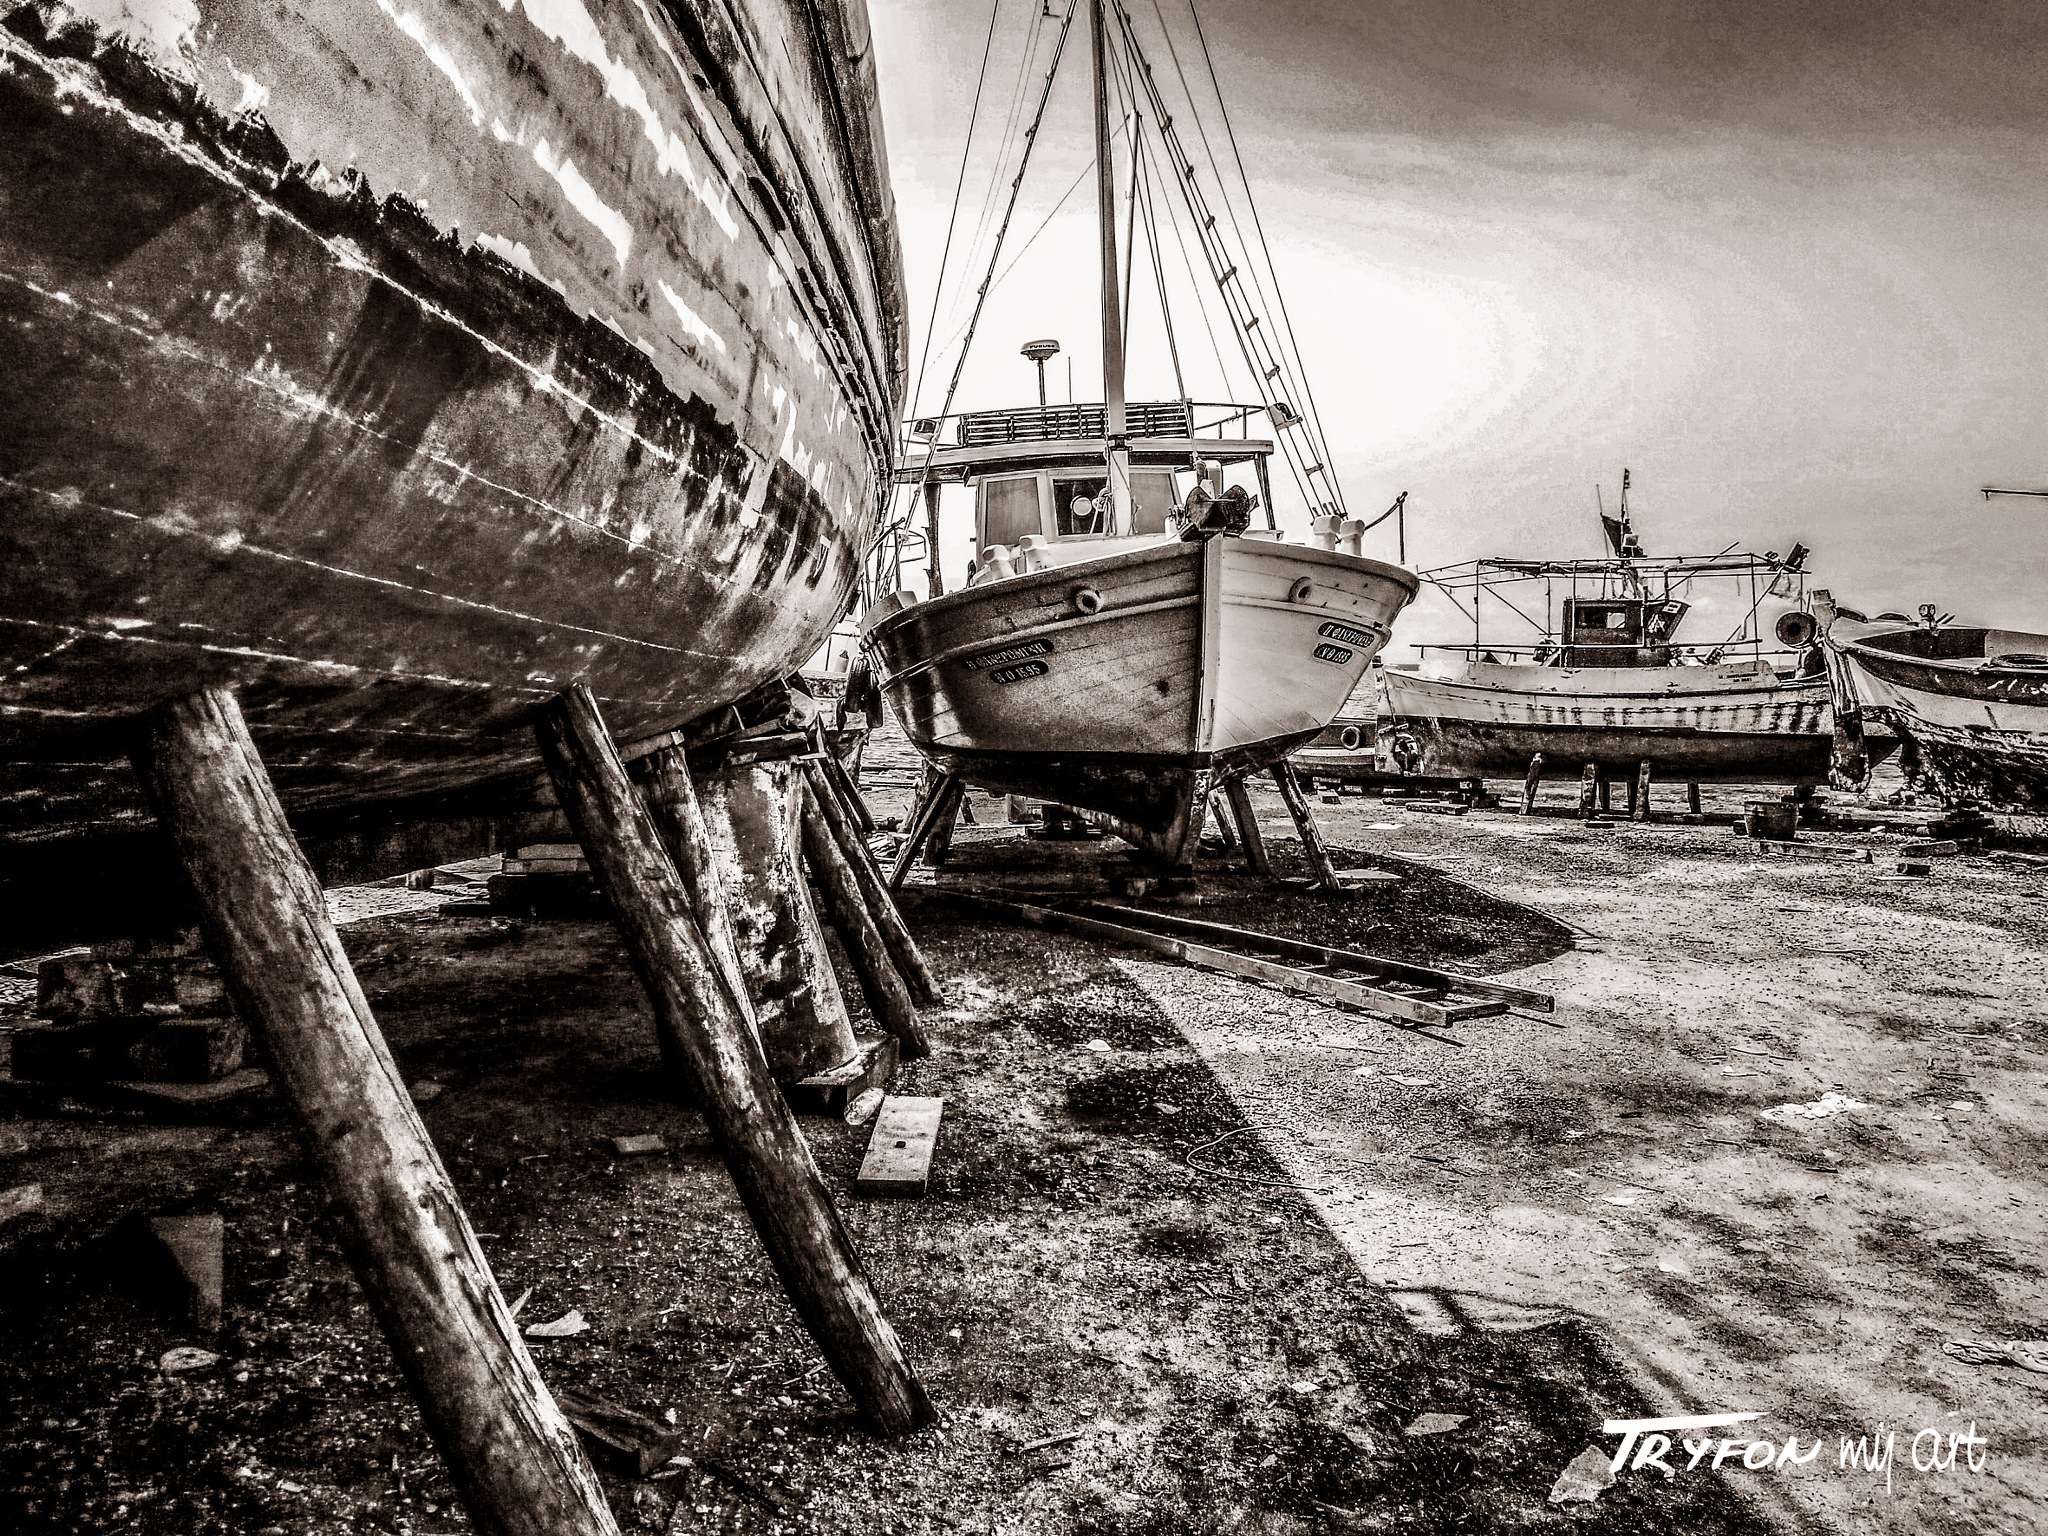 Carnayo - 02. by tryfongraphics